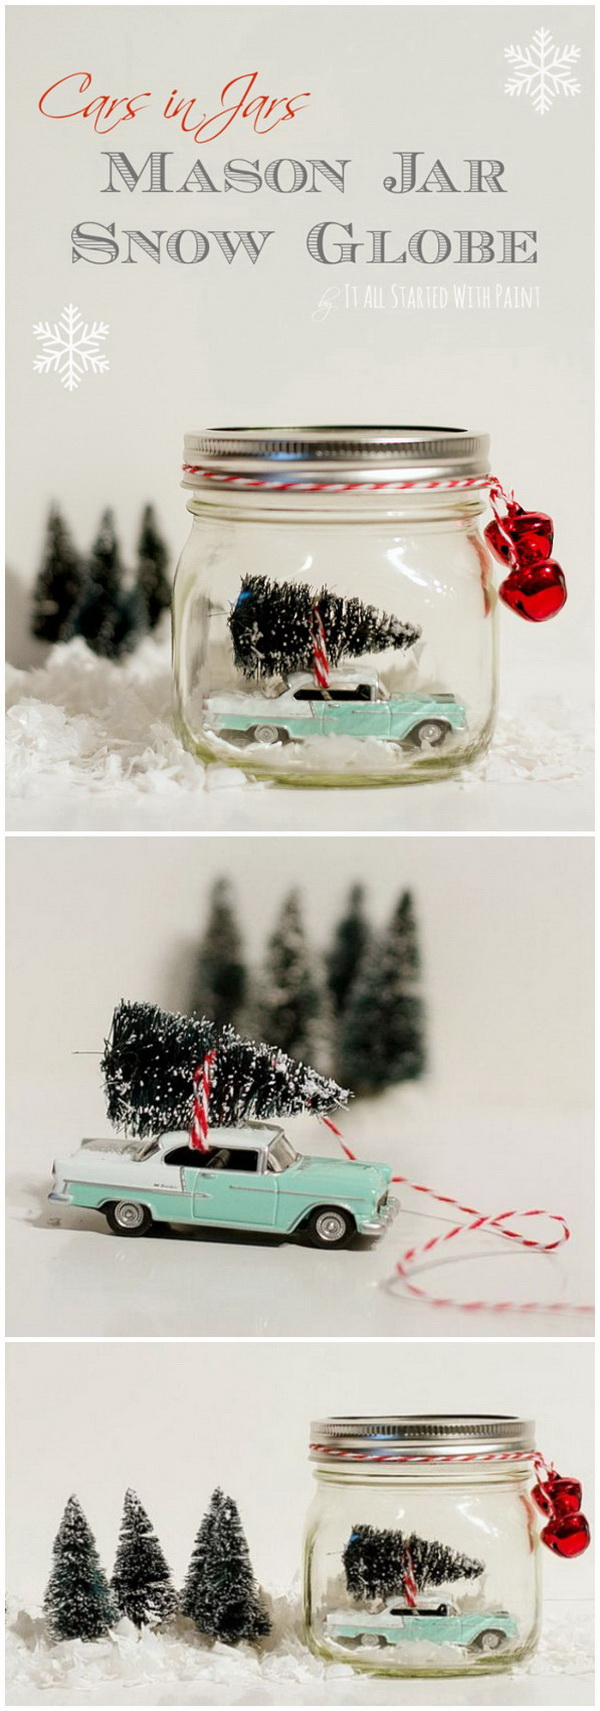 Car in Jar Snow Globe. Easy mason jar Christmas craft idea for kids with vintage cars and bottle brush trees and mason jars.